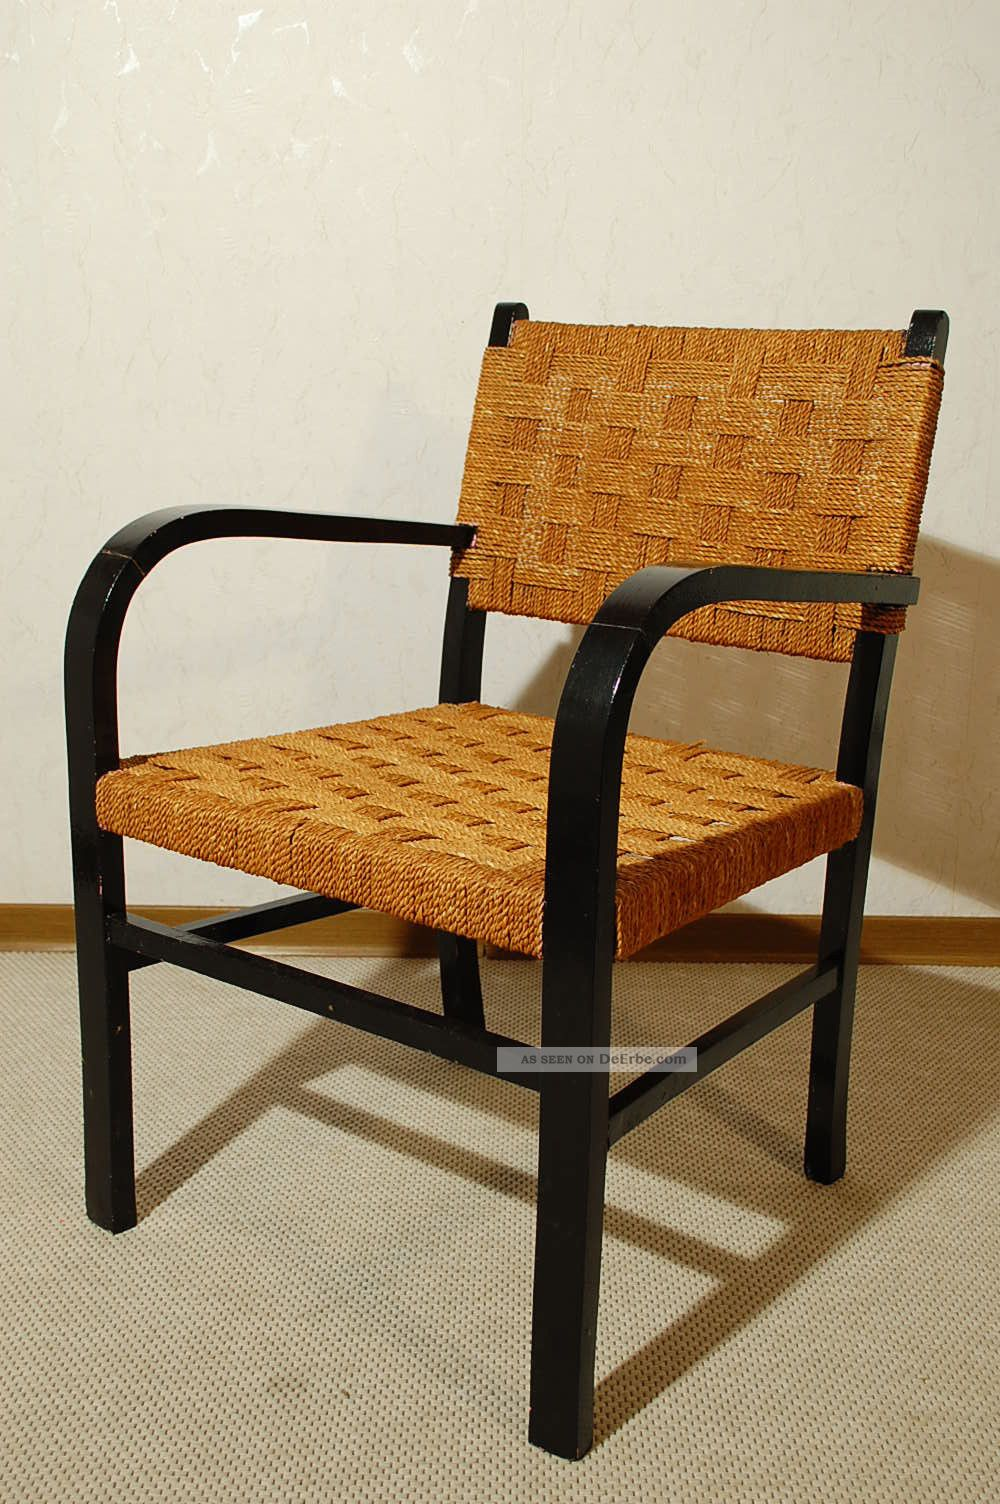 20er jahre art deco sessel dieckmann ra chair bauhaus stuhl for Stuhl design bauhaus